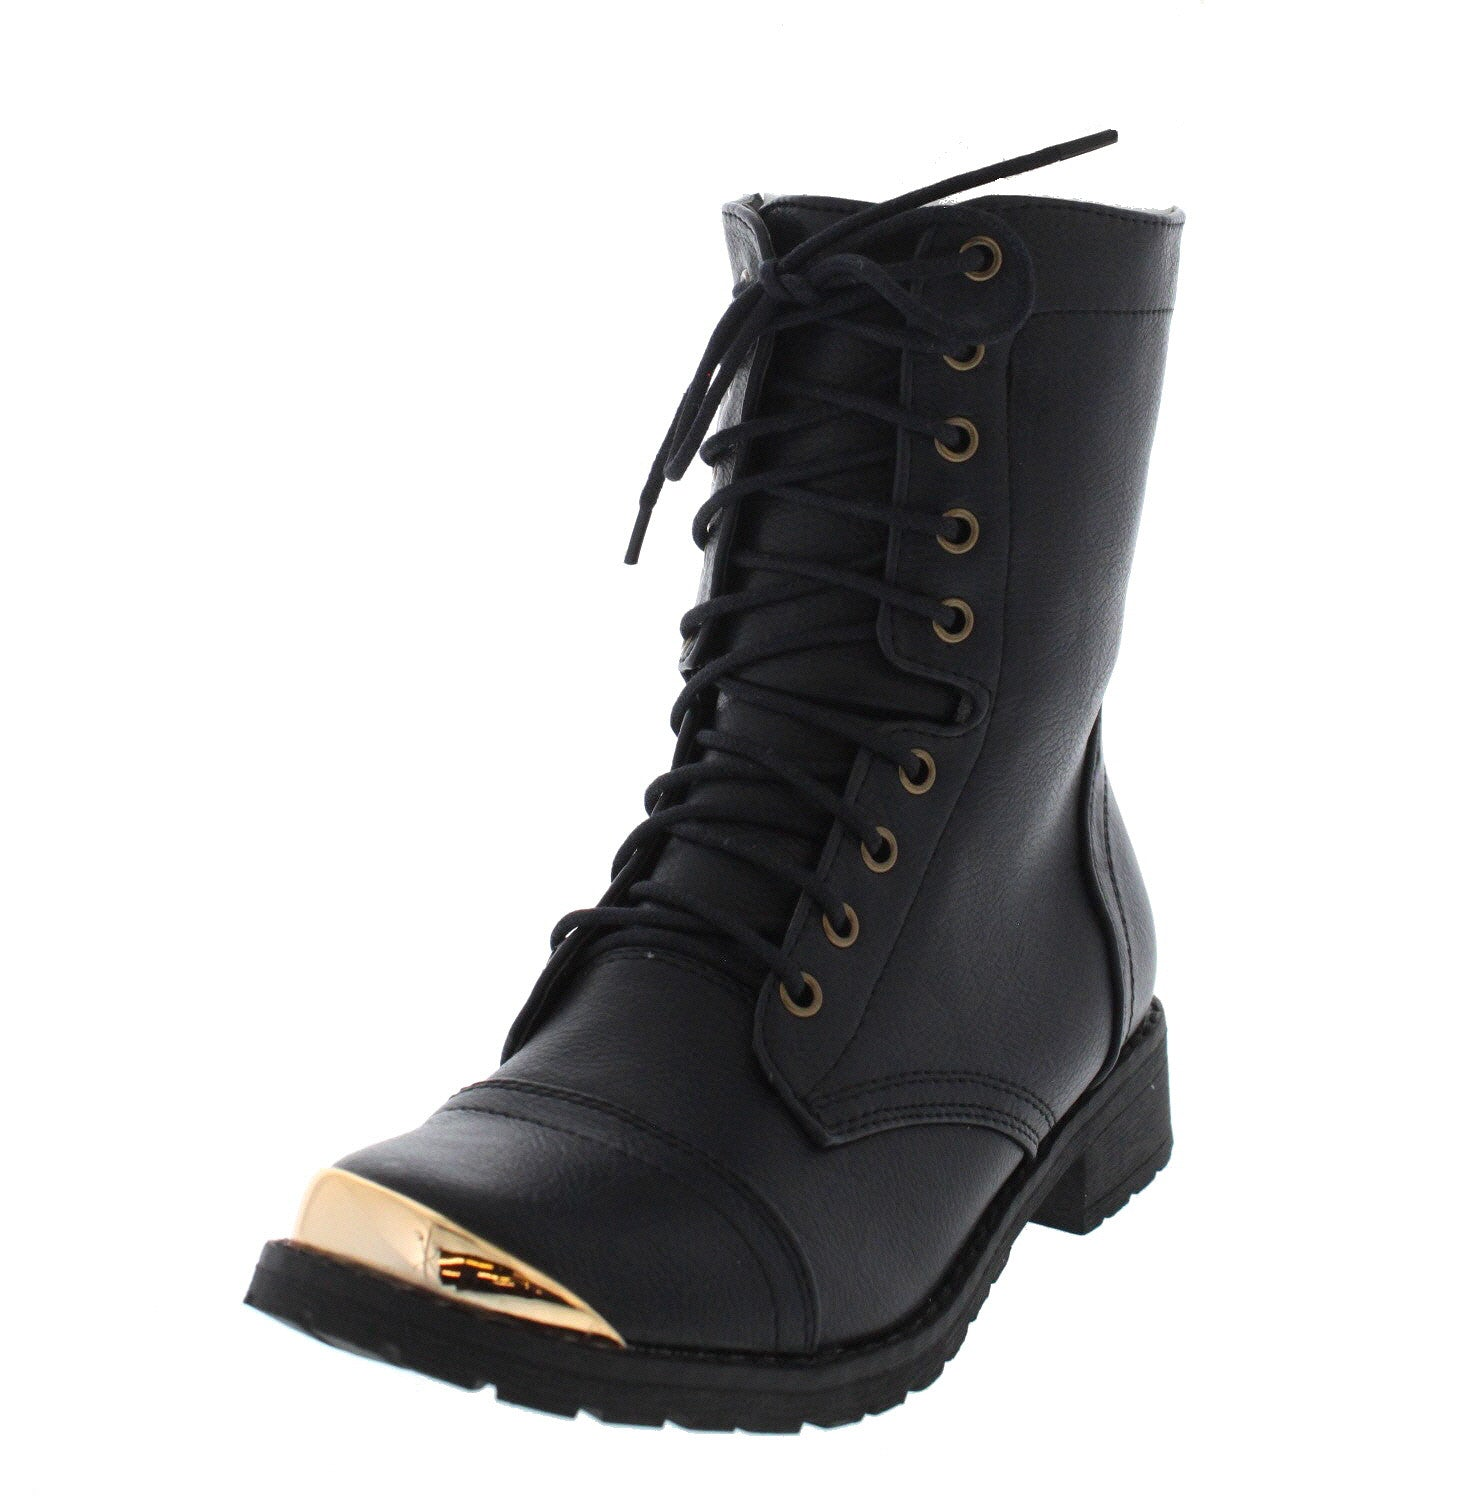 eb2b10a38c428 Minita01 Black Gold Toe Combat Boot - Wholesale Fashion Shoes